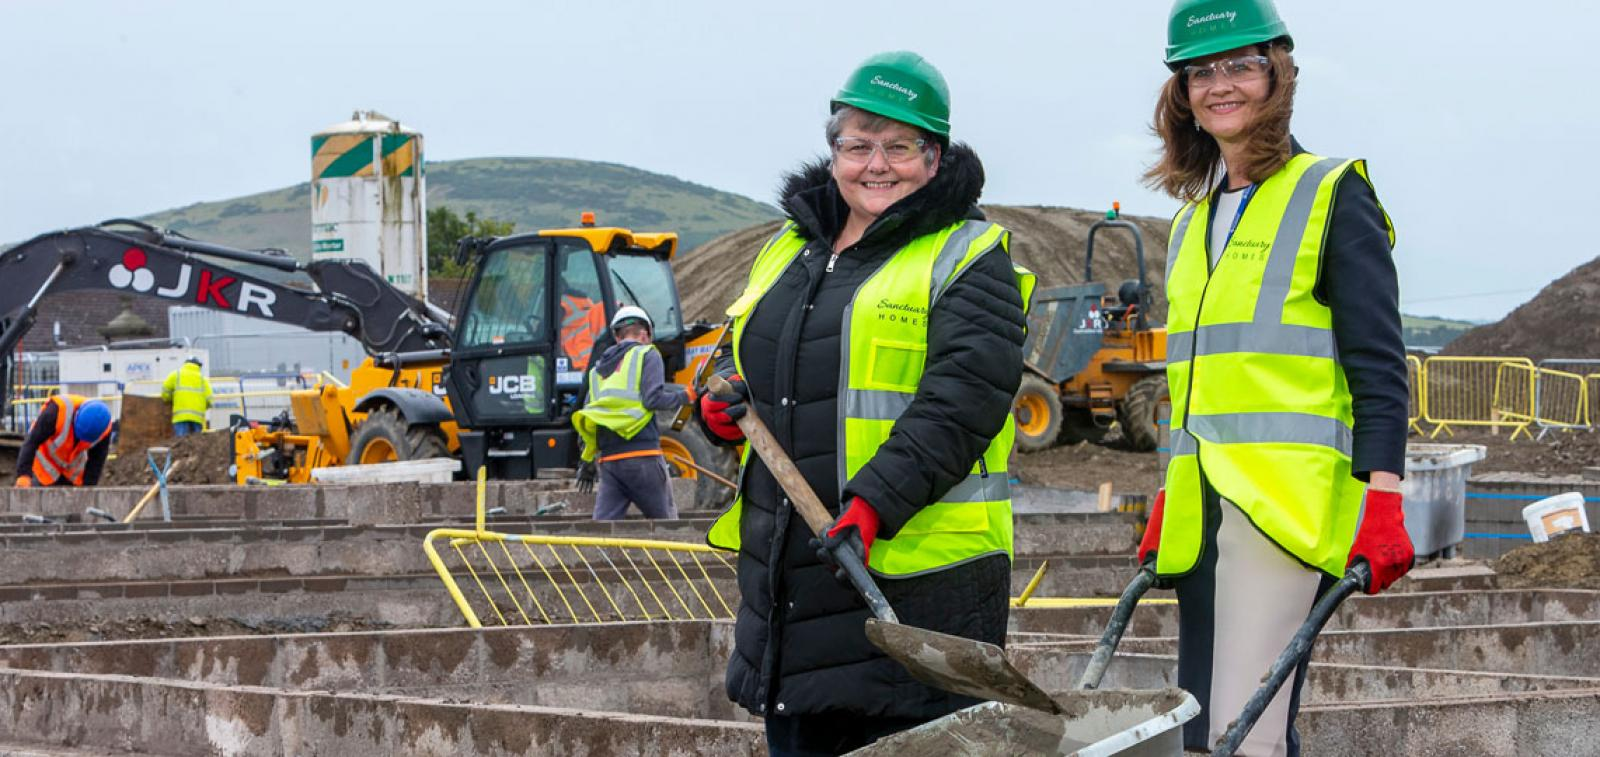 Councillor Anne Stirling and Pat Cahill on the new site in Portsoy.